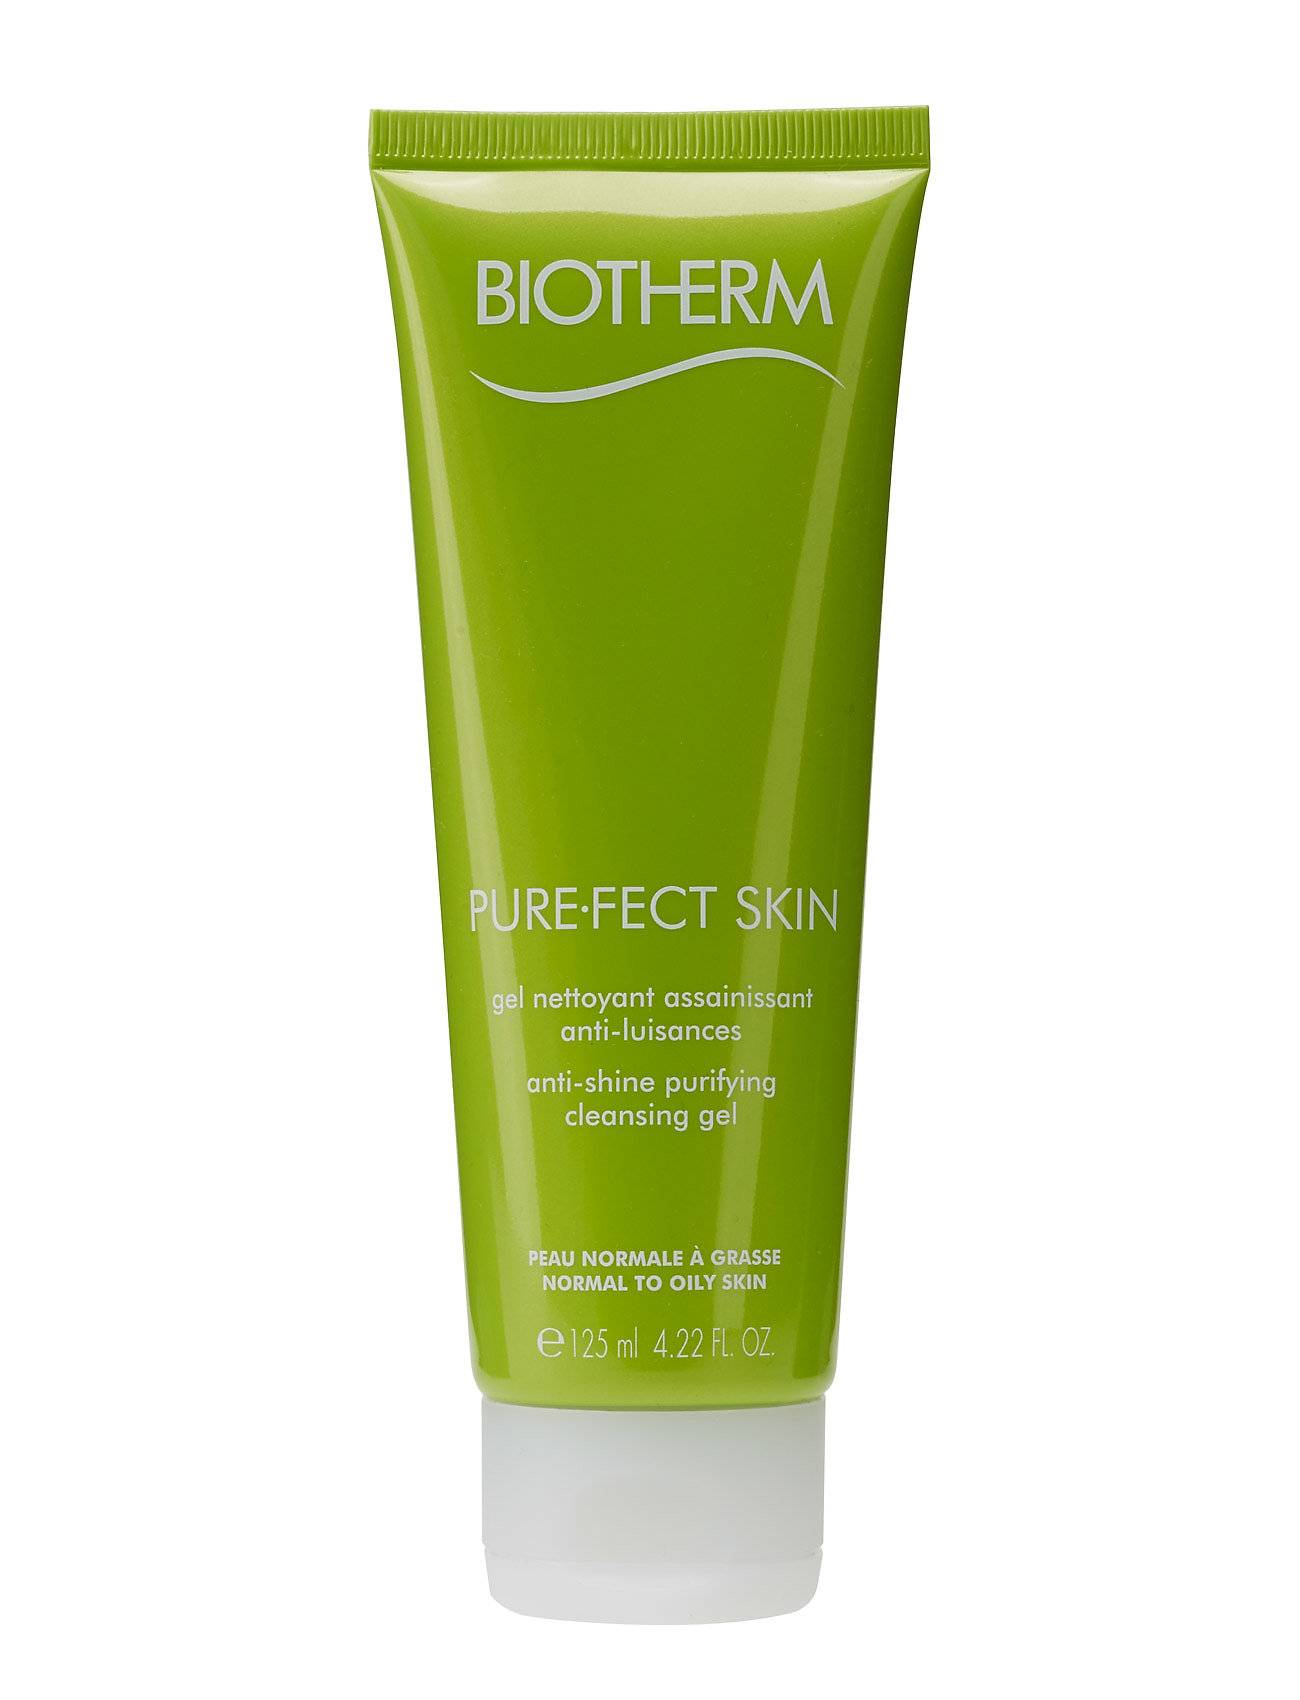 Biotherm Pure-Fect Skin Cleanser 125 Ml